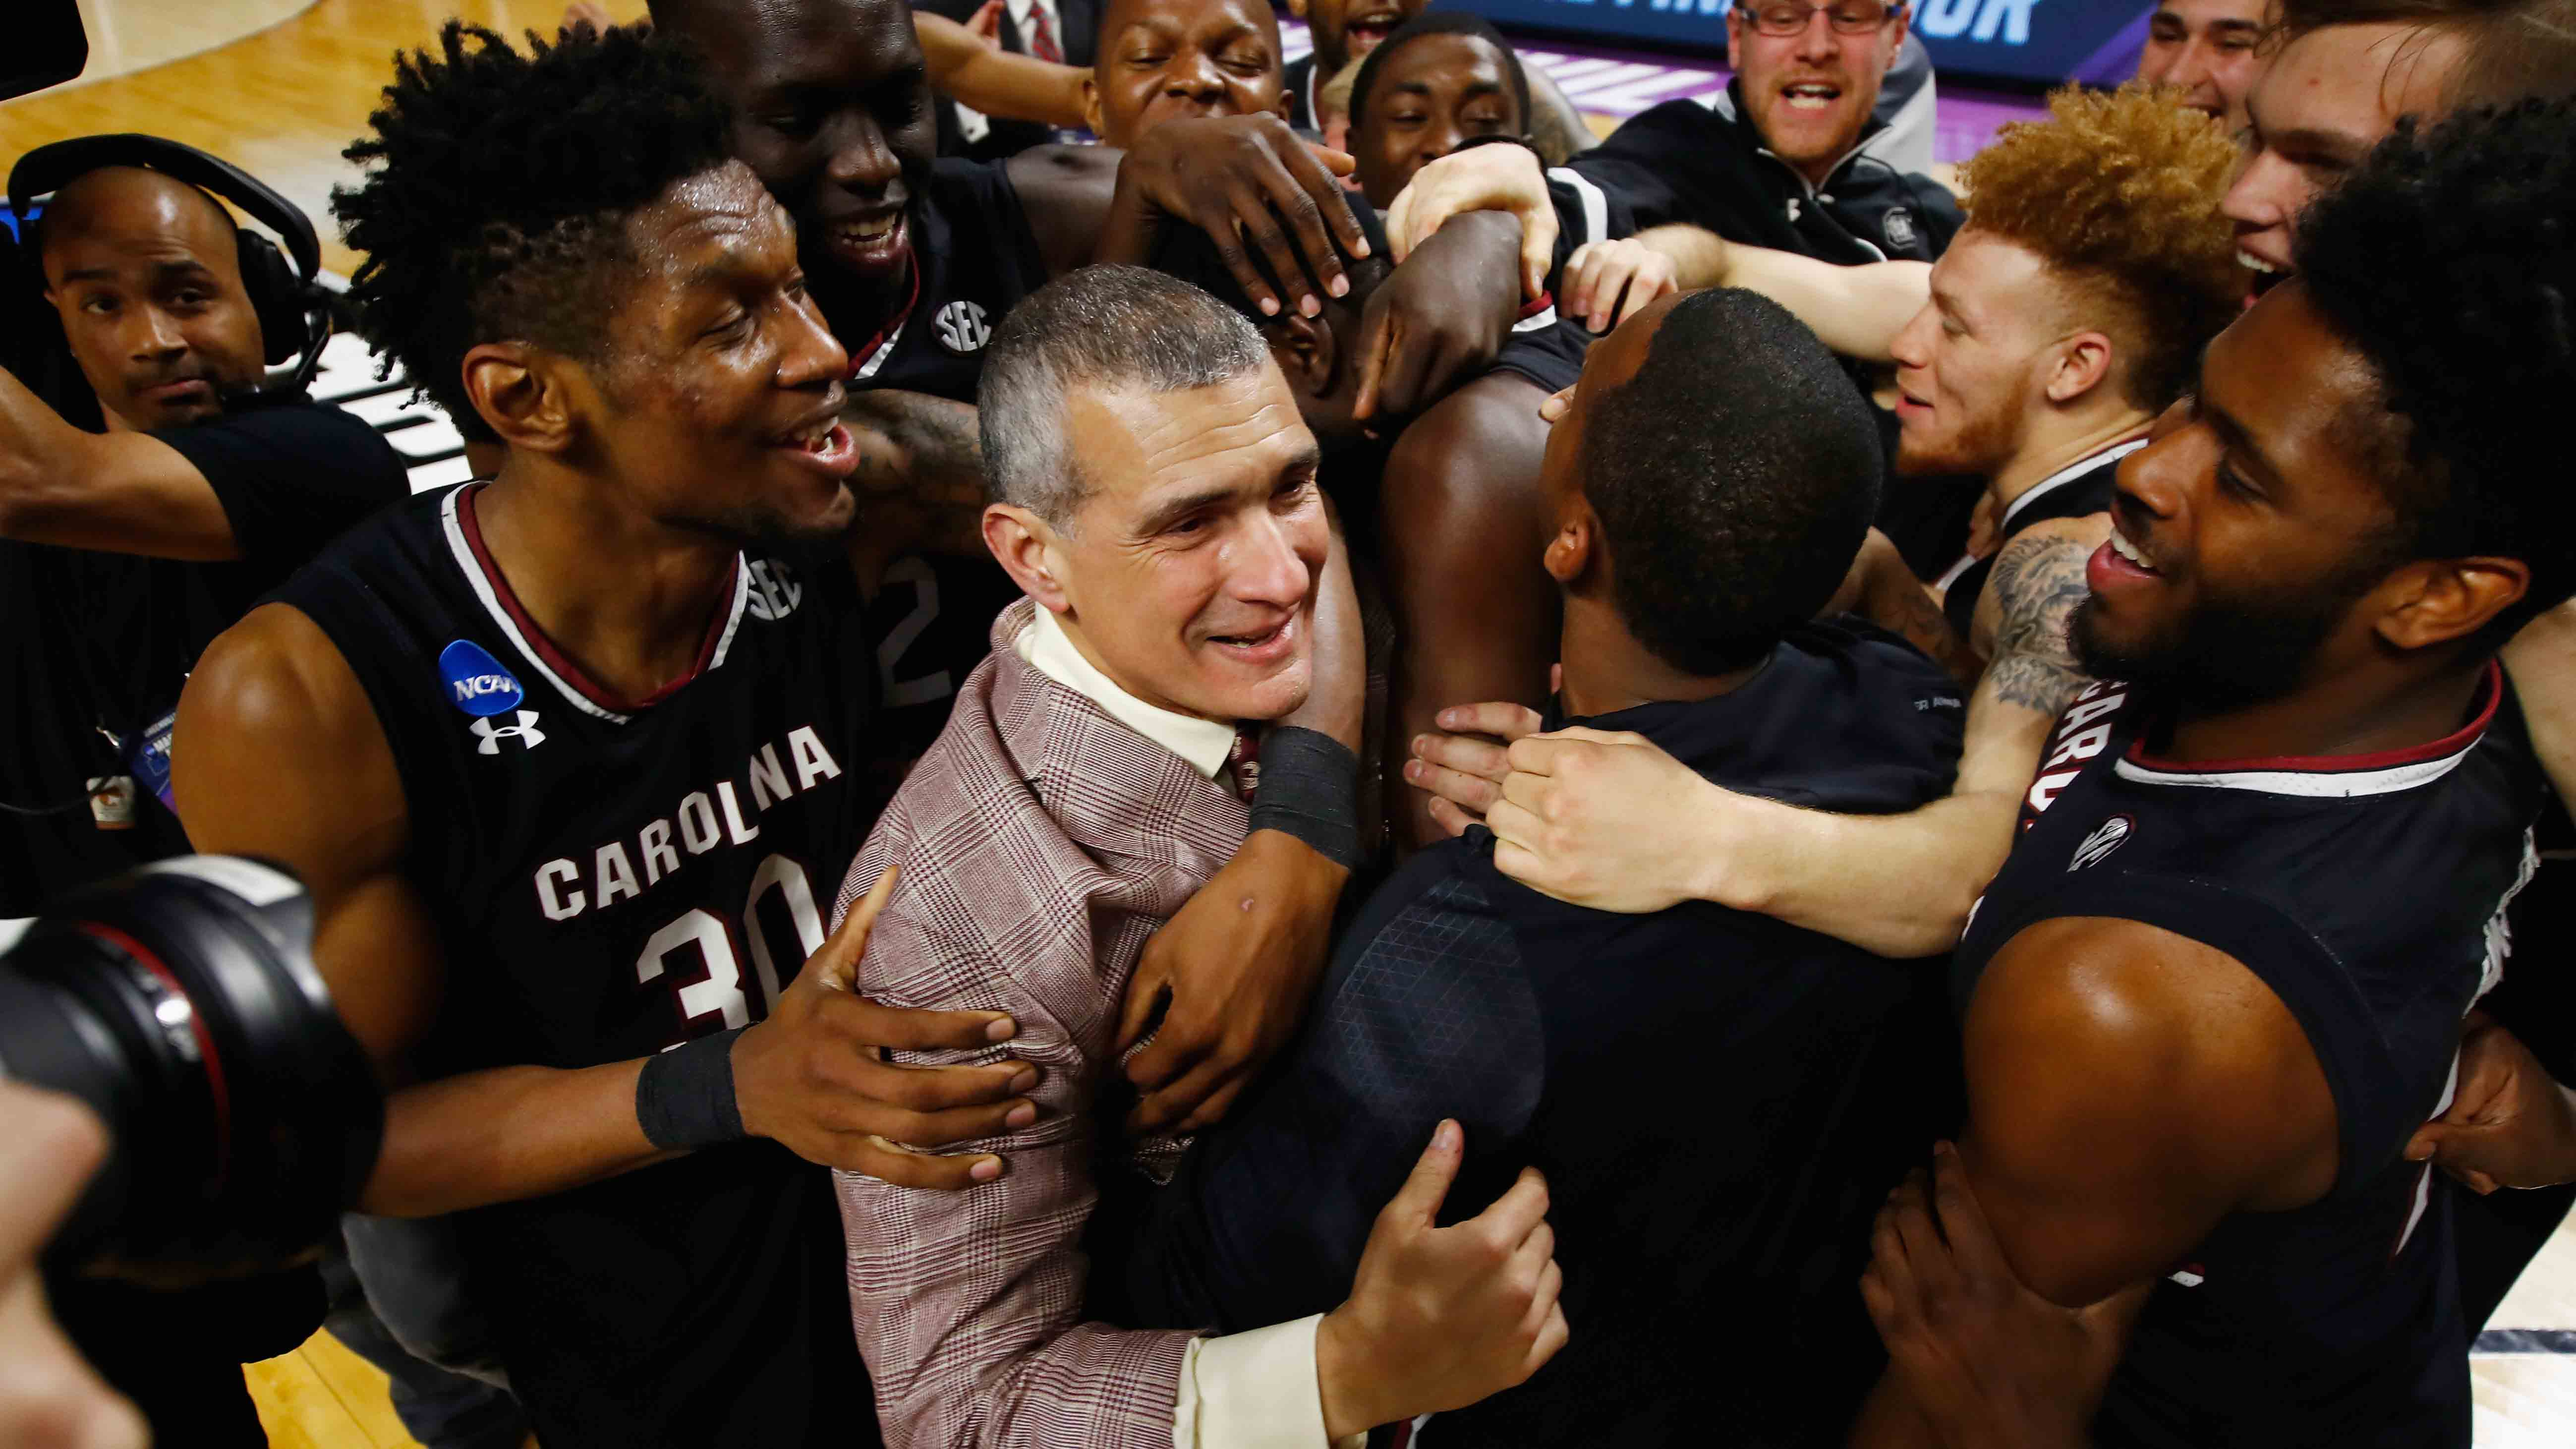 The South Carolina basketball team reacts after defeating Duke in the 2017 NCAA basketball tournament.